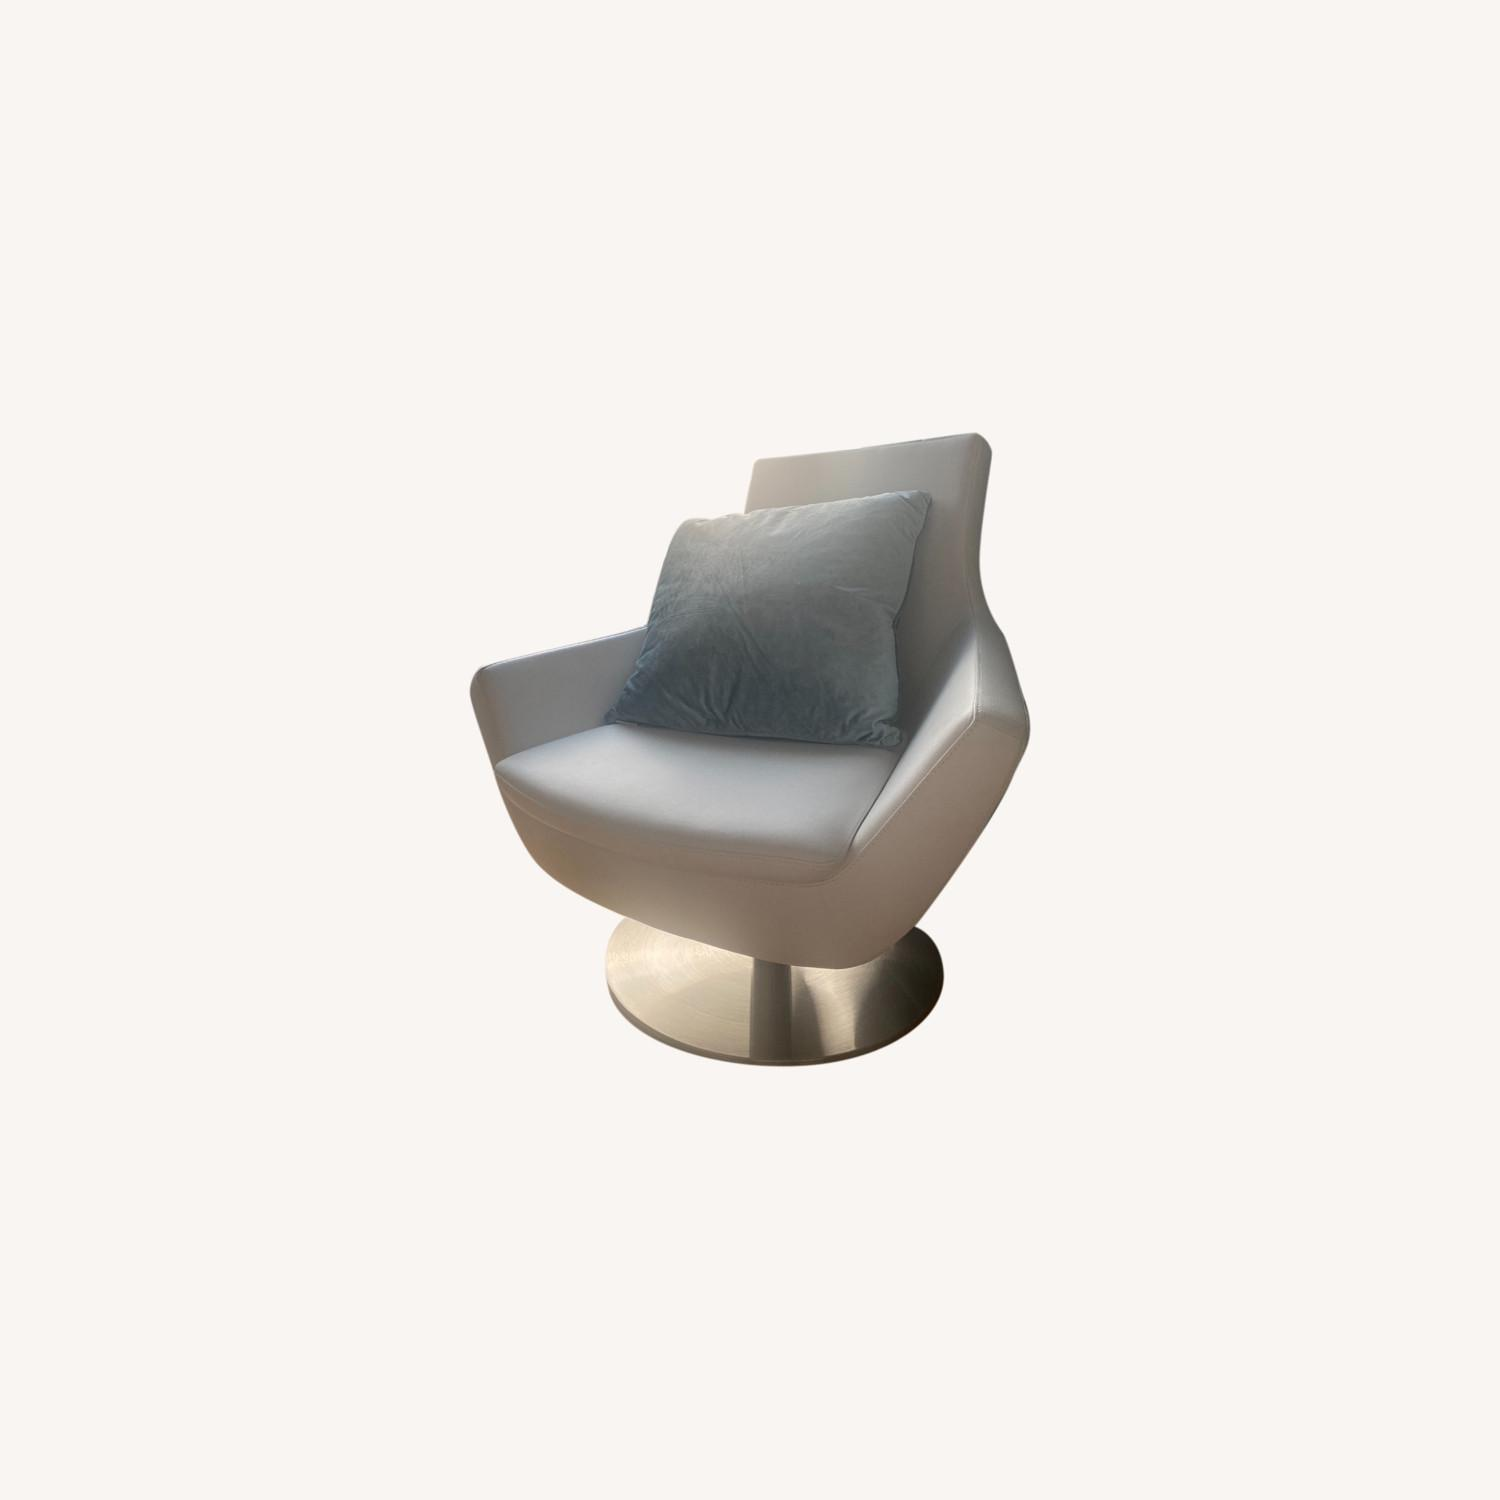 Lazzoni White Leather Chair - image-0